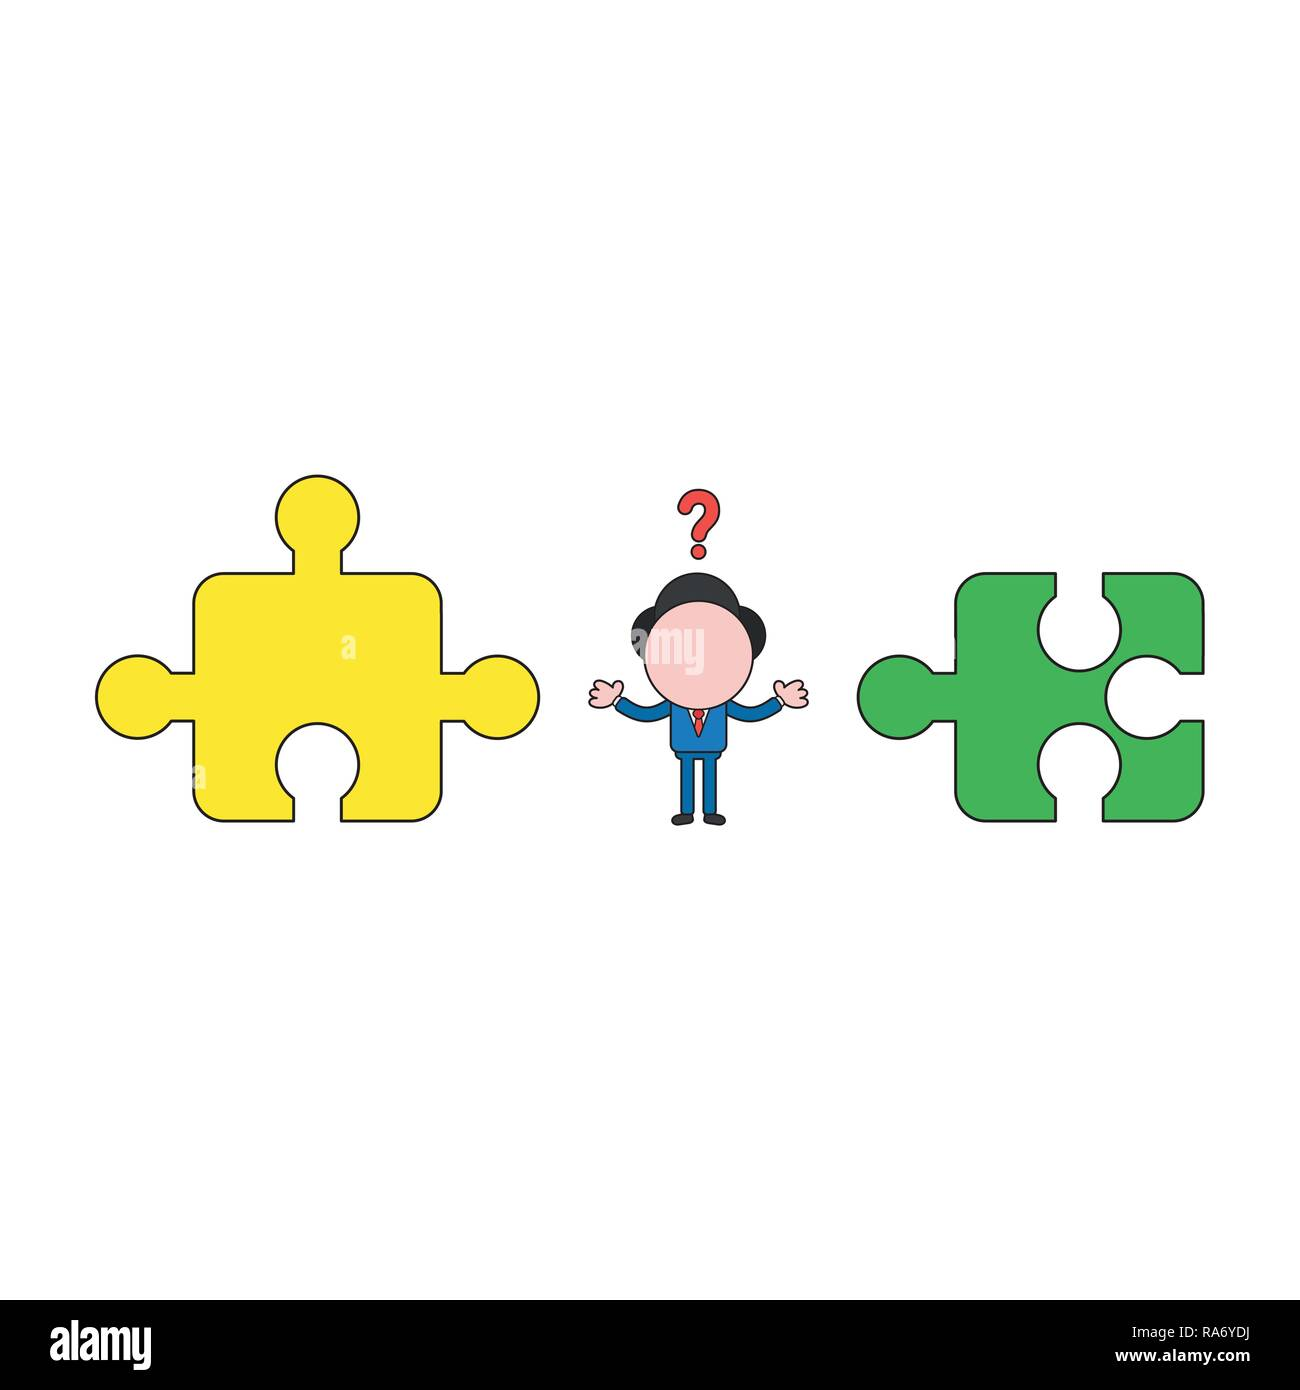 Vector illustration concept of confused businessman character between incompatible puzzle pieces. Color and black outlines. Stock Vector